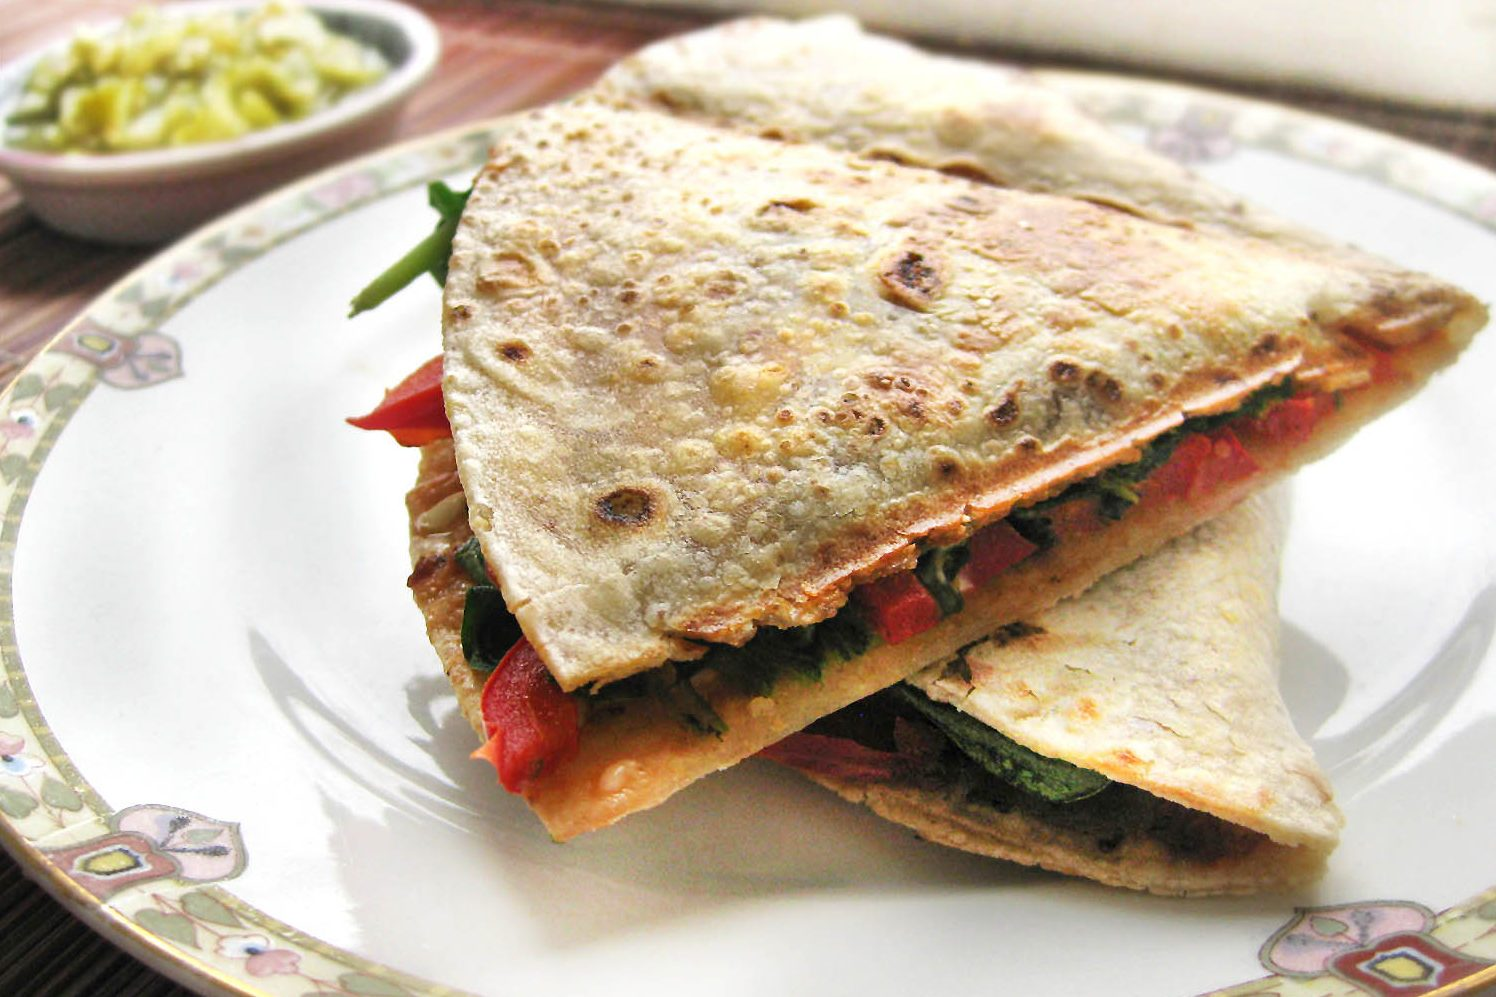 GF vegan quesadillas